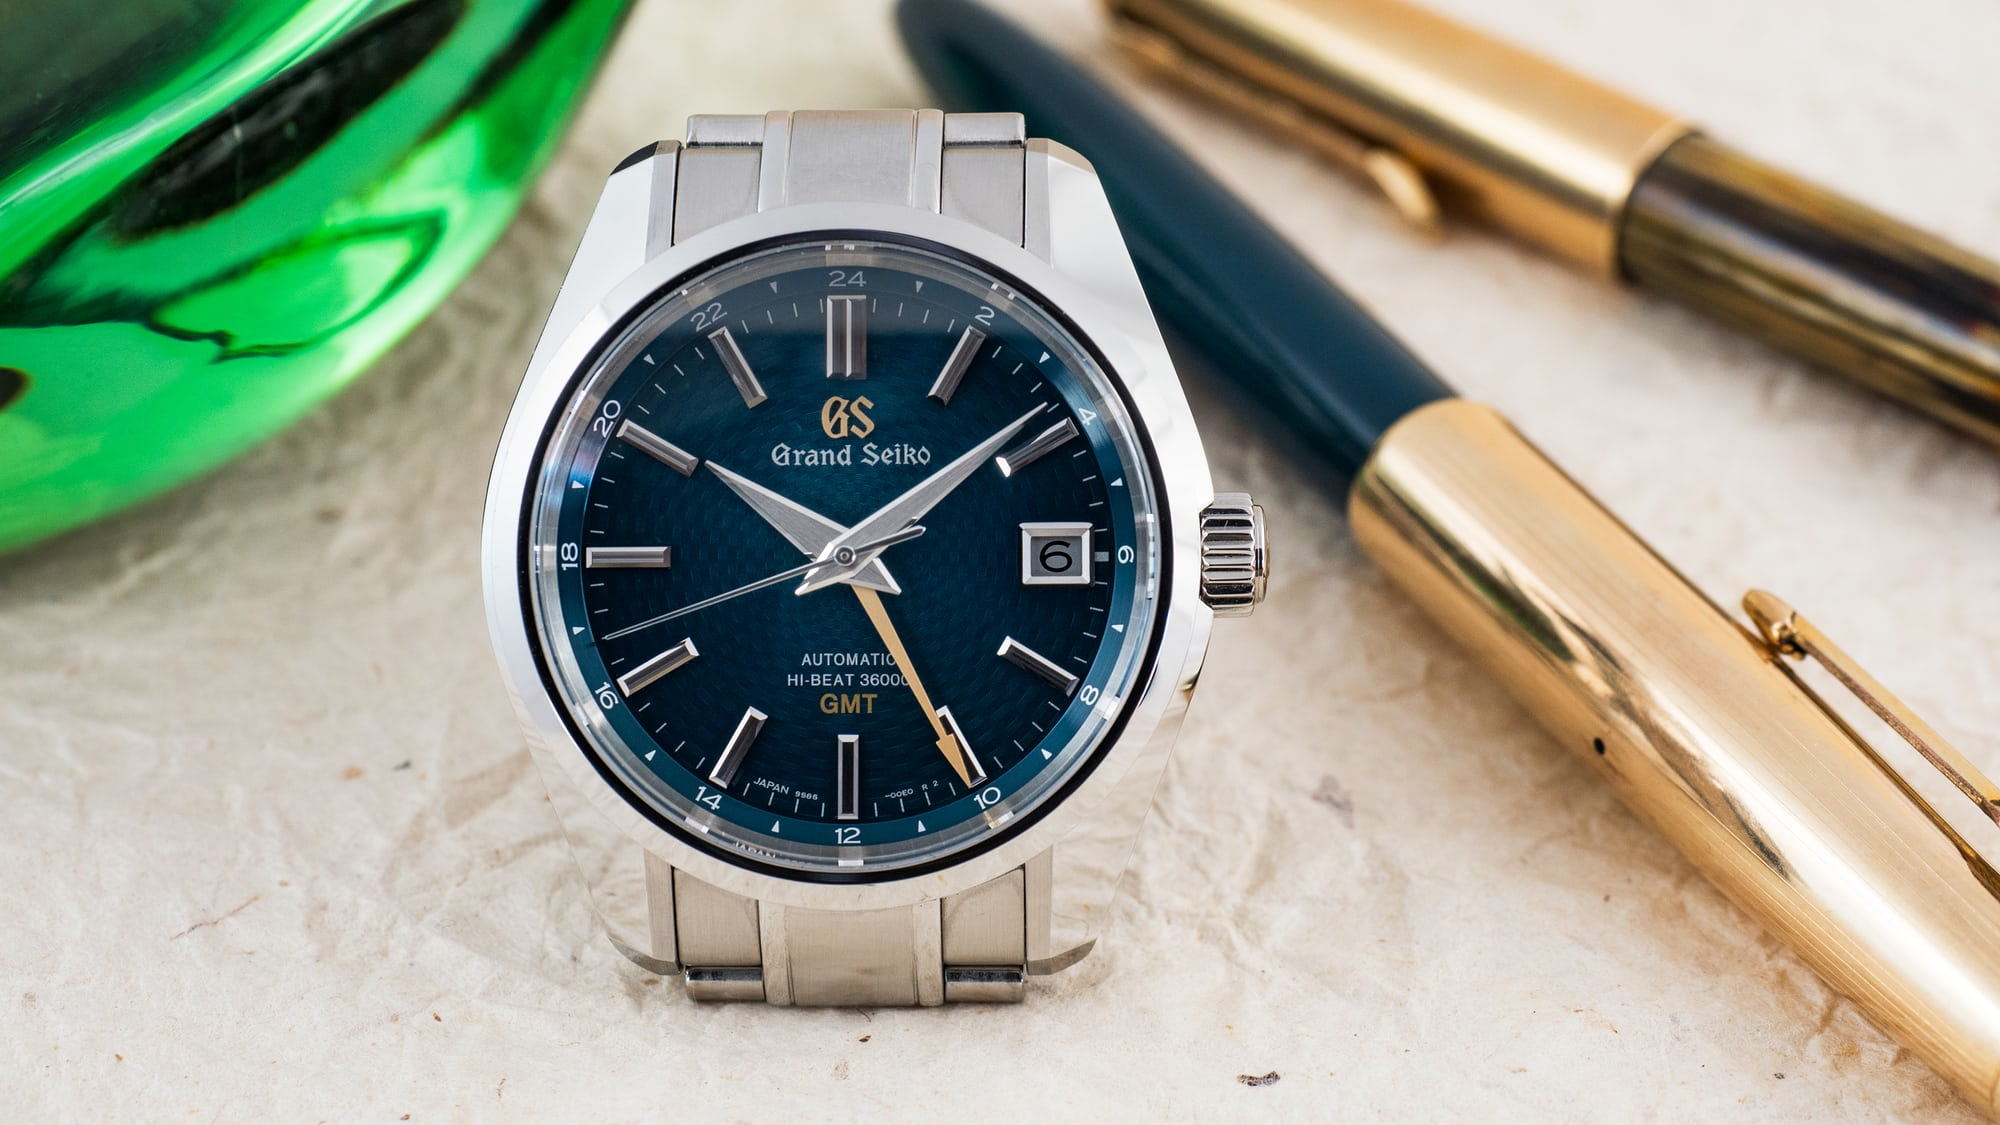 Hands-On: The Grand Seiko Hi-Beat 36000 GMT Limited Edition SBGJ227 'Peacock'